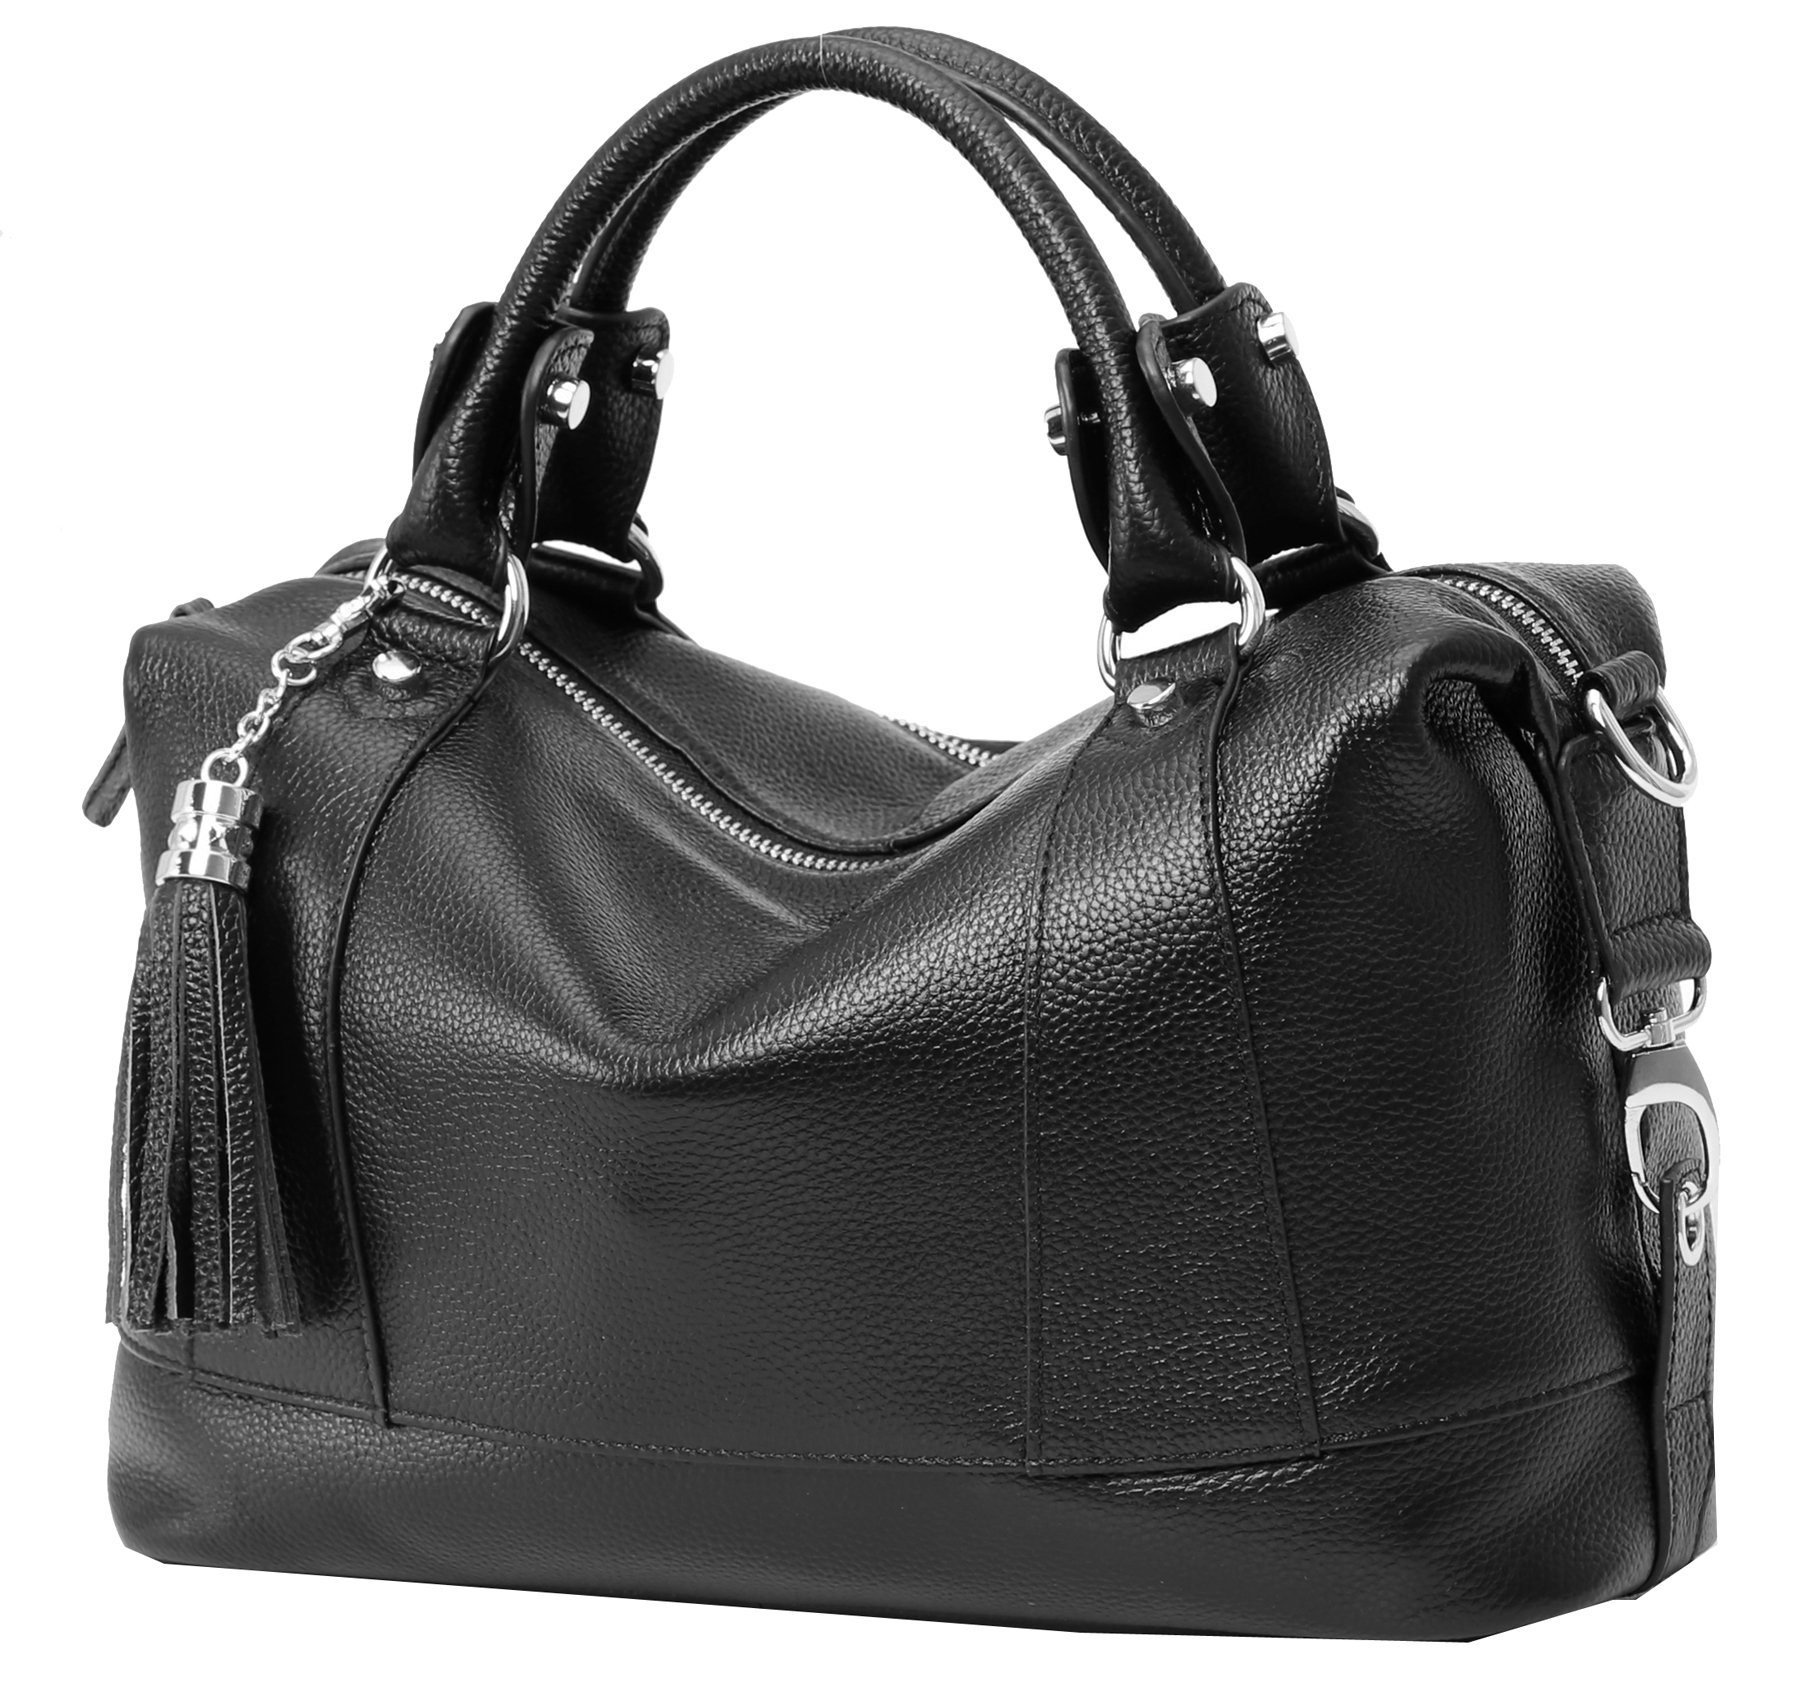 Heshe Leather Shoulder Bag Womens Tote Top Handle Handbags Cross Body Bags for Office Lady (Black)